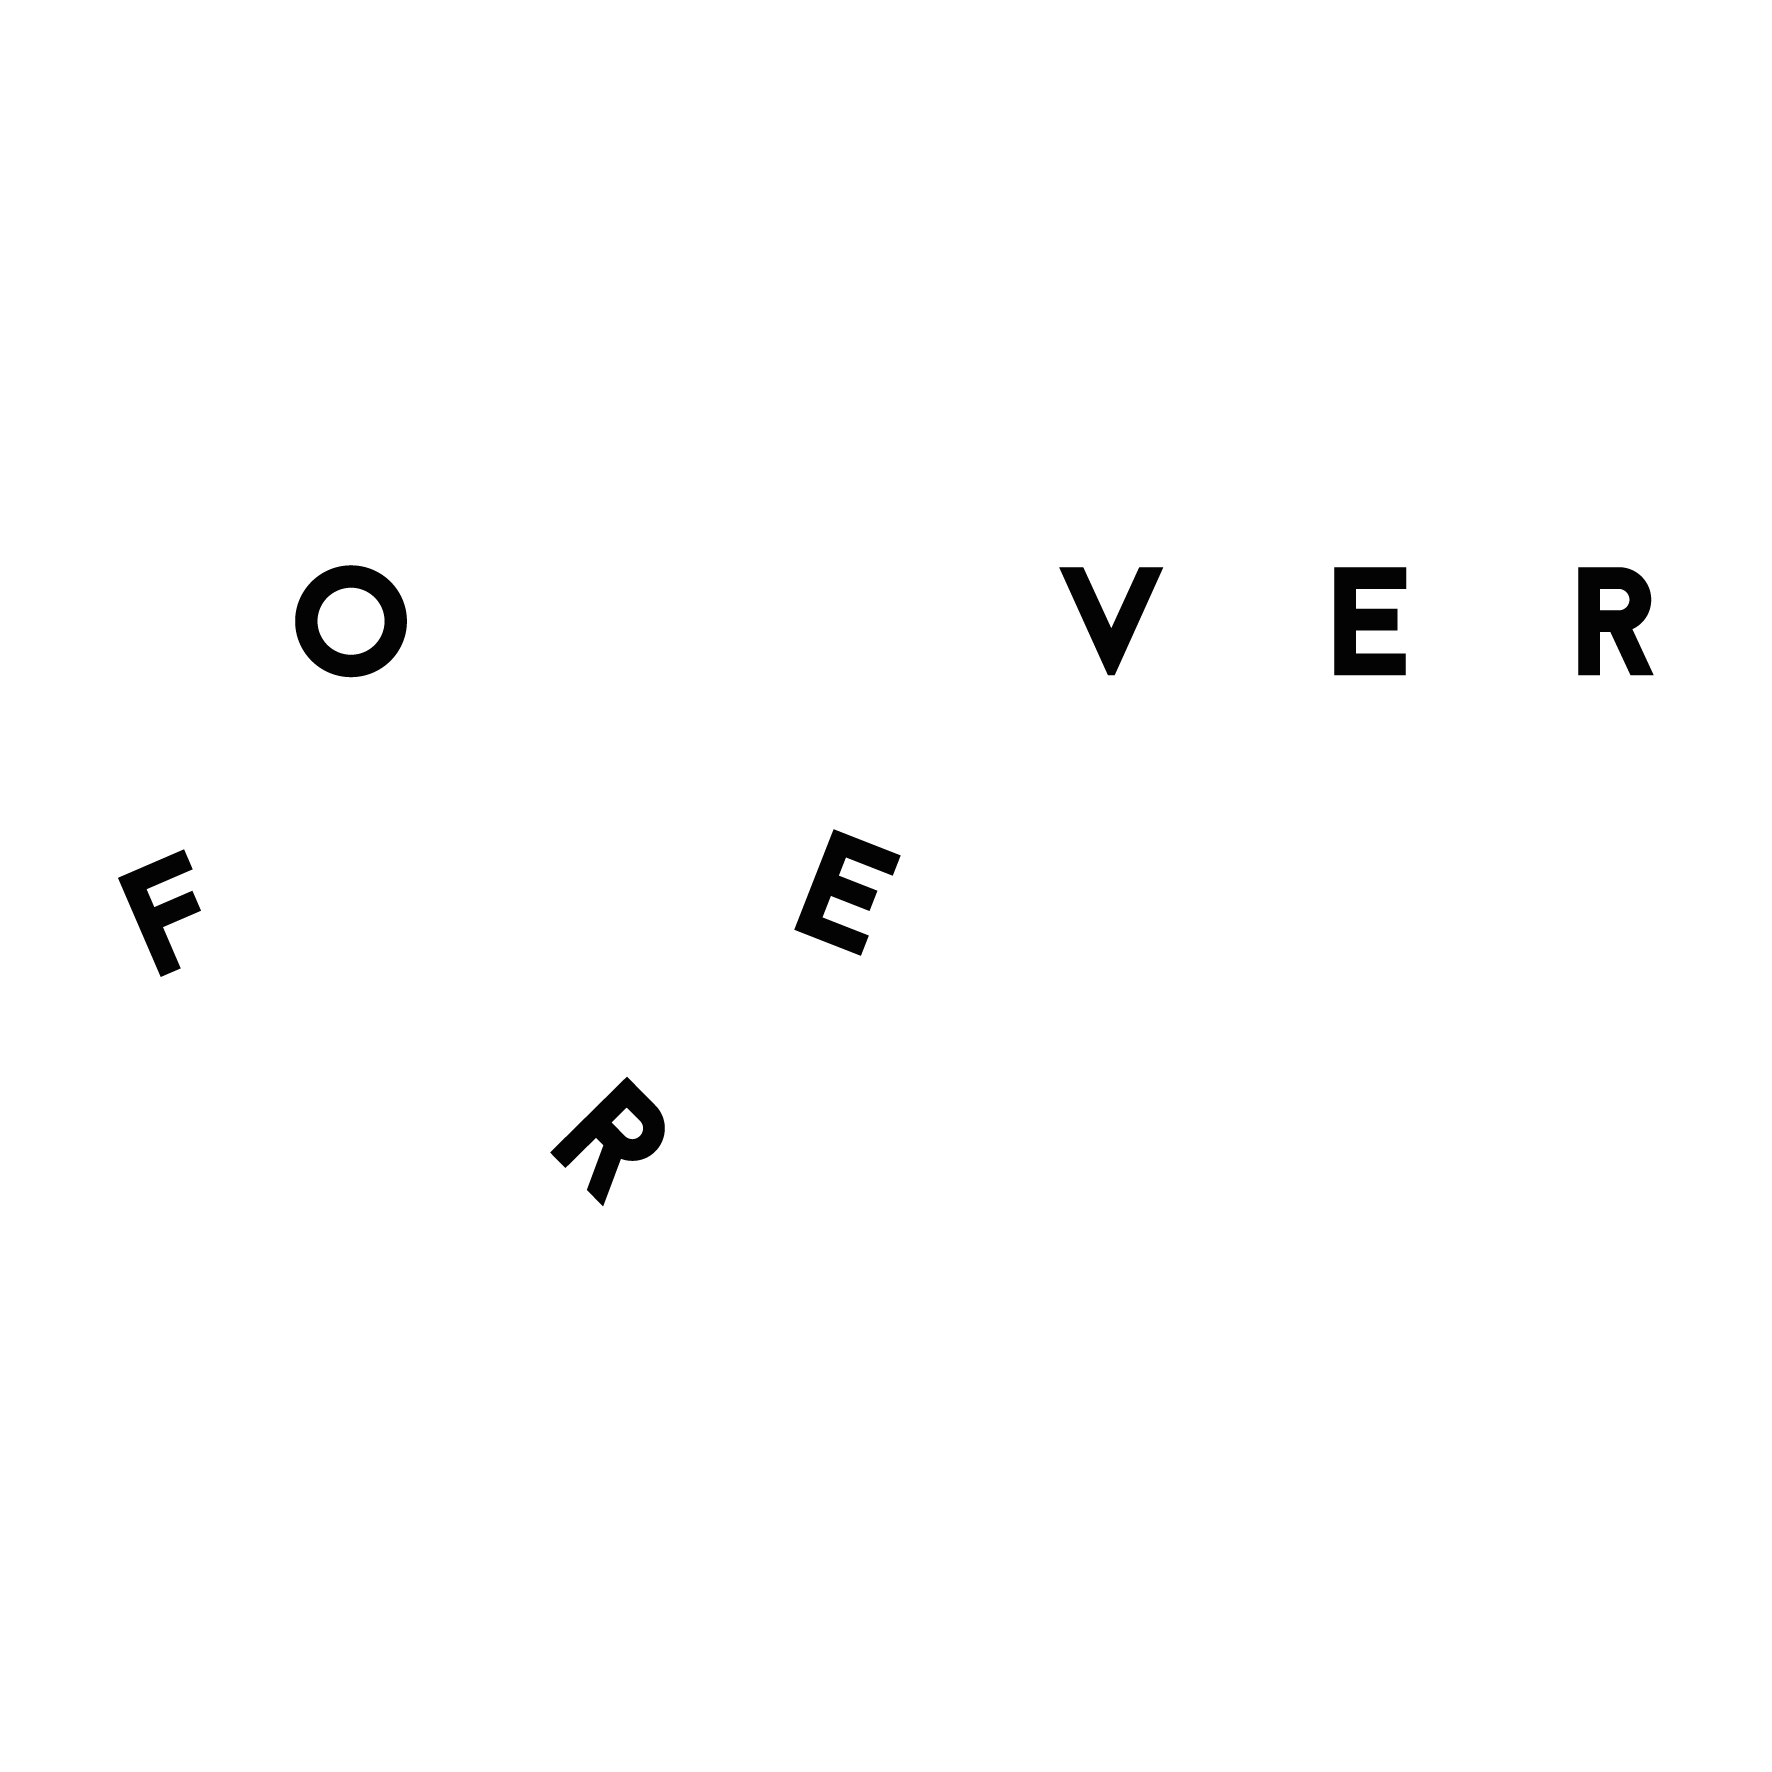 forever-texte